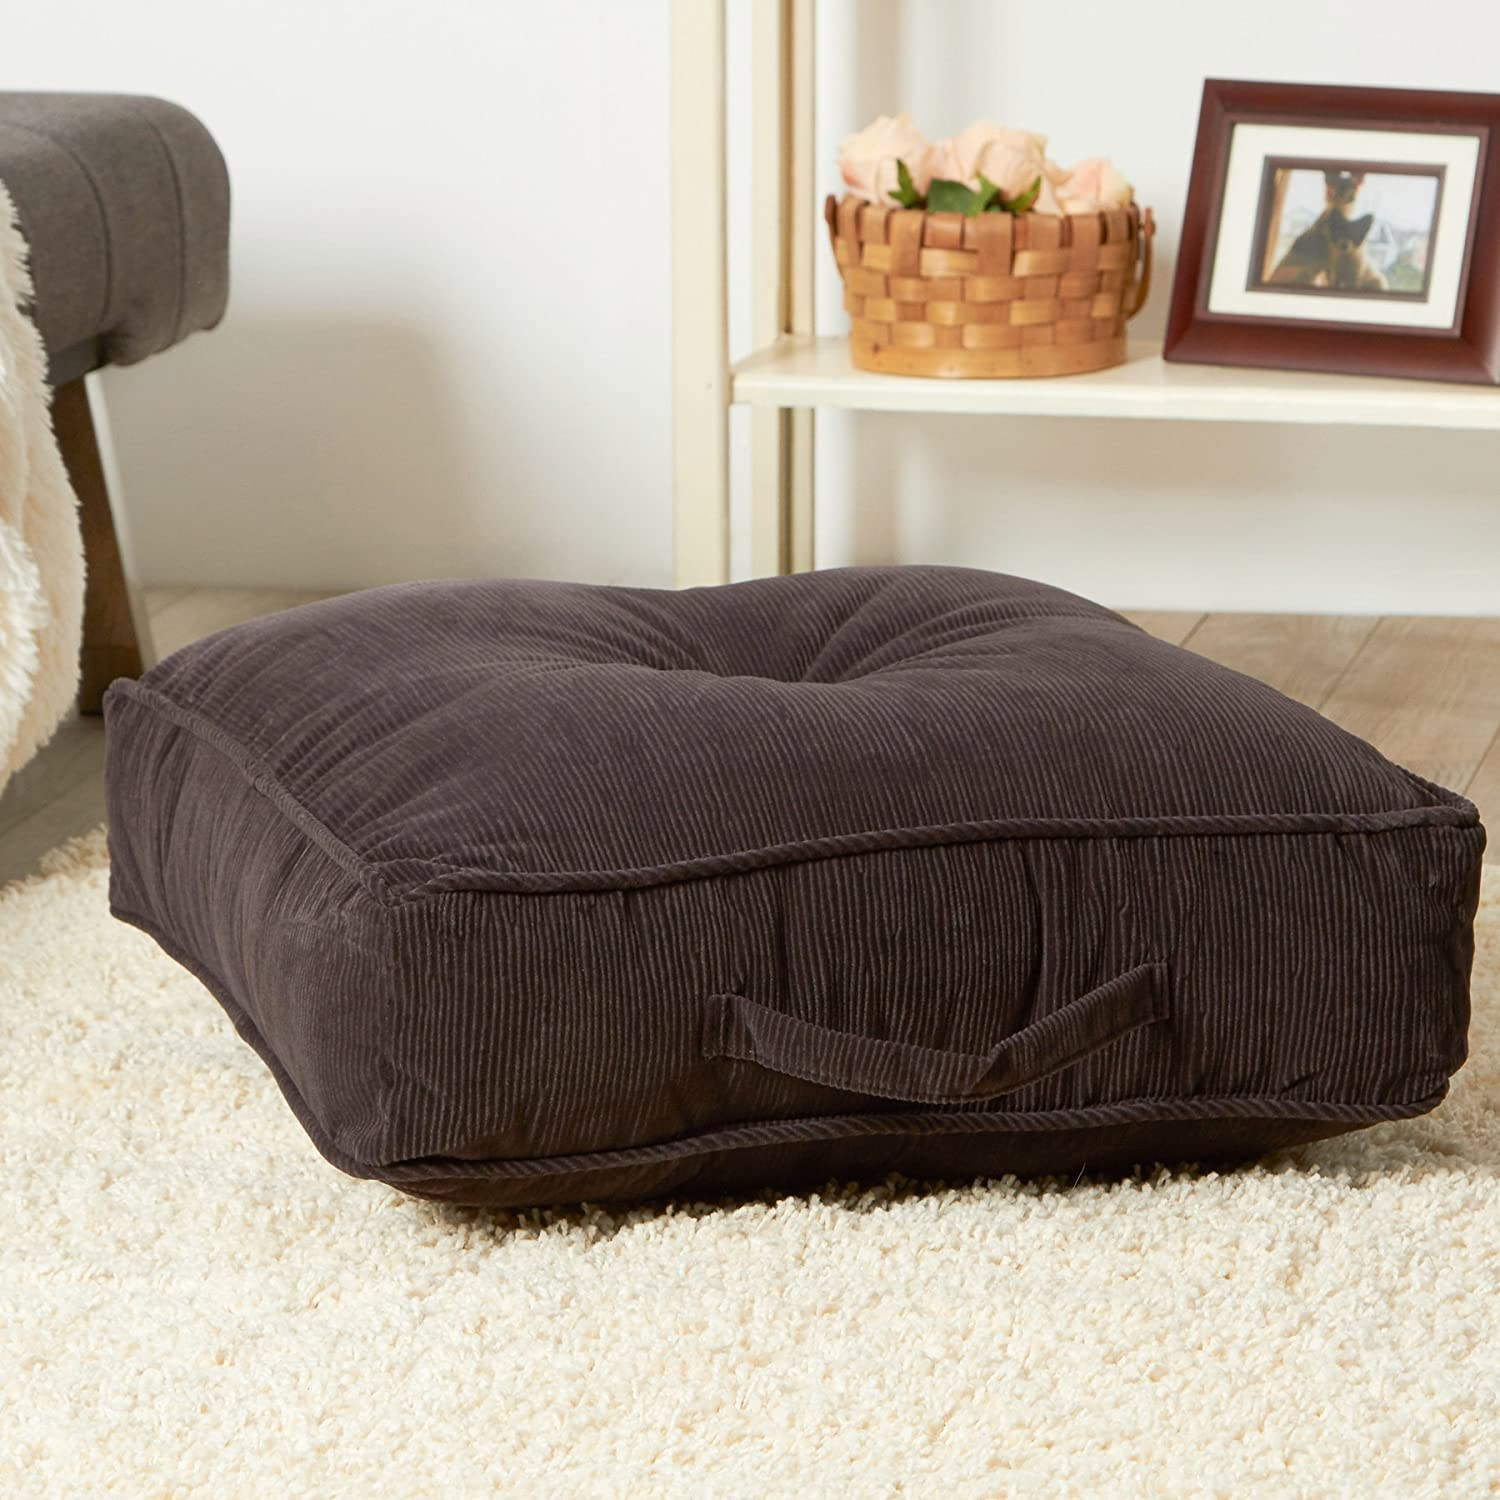 Amazon.com: Greendale Home Fashions 19-Inch Square Floor Pillow ...